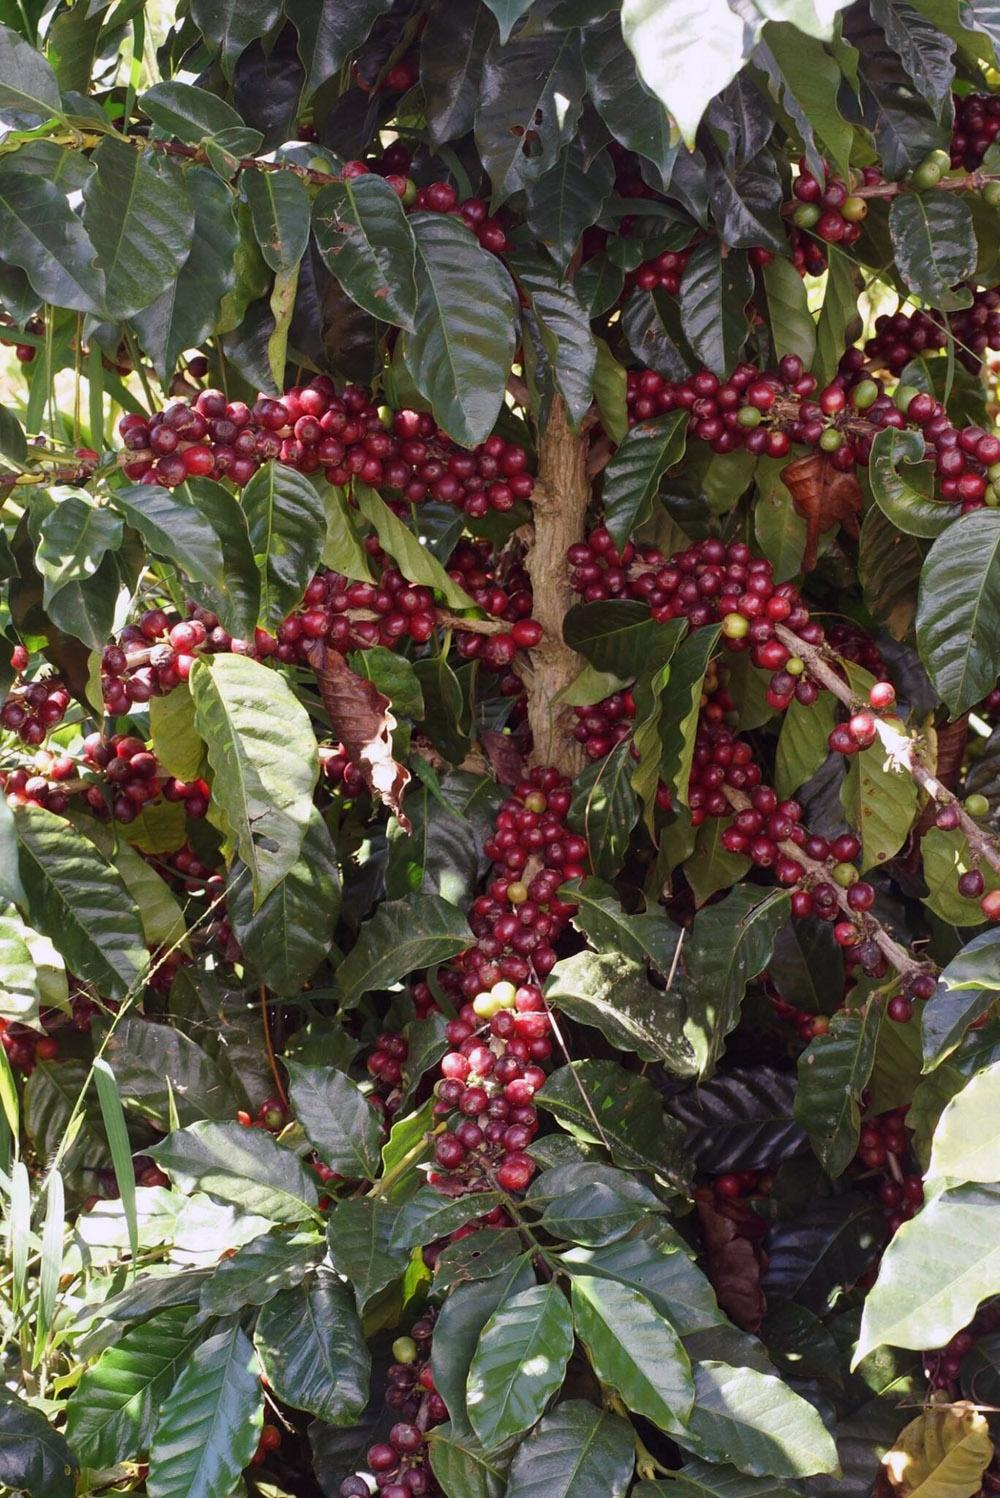 Sinouk Coffee Plantation : Harvest and Process Your Own Coffee Beans - Find us